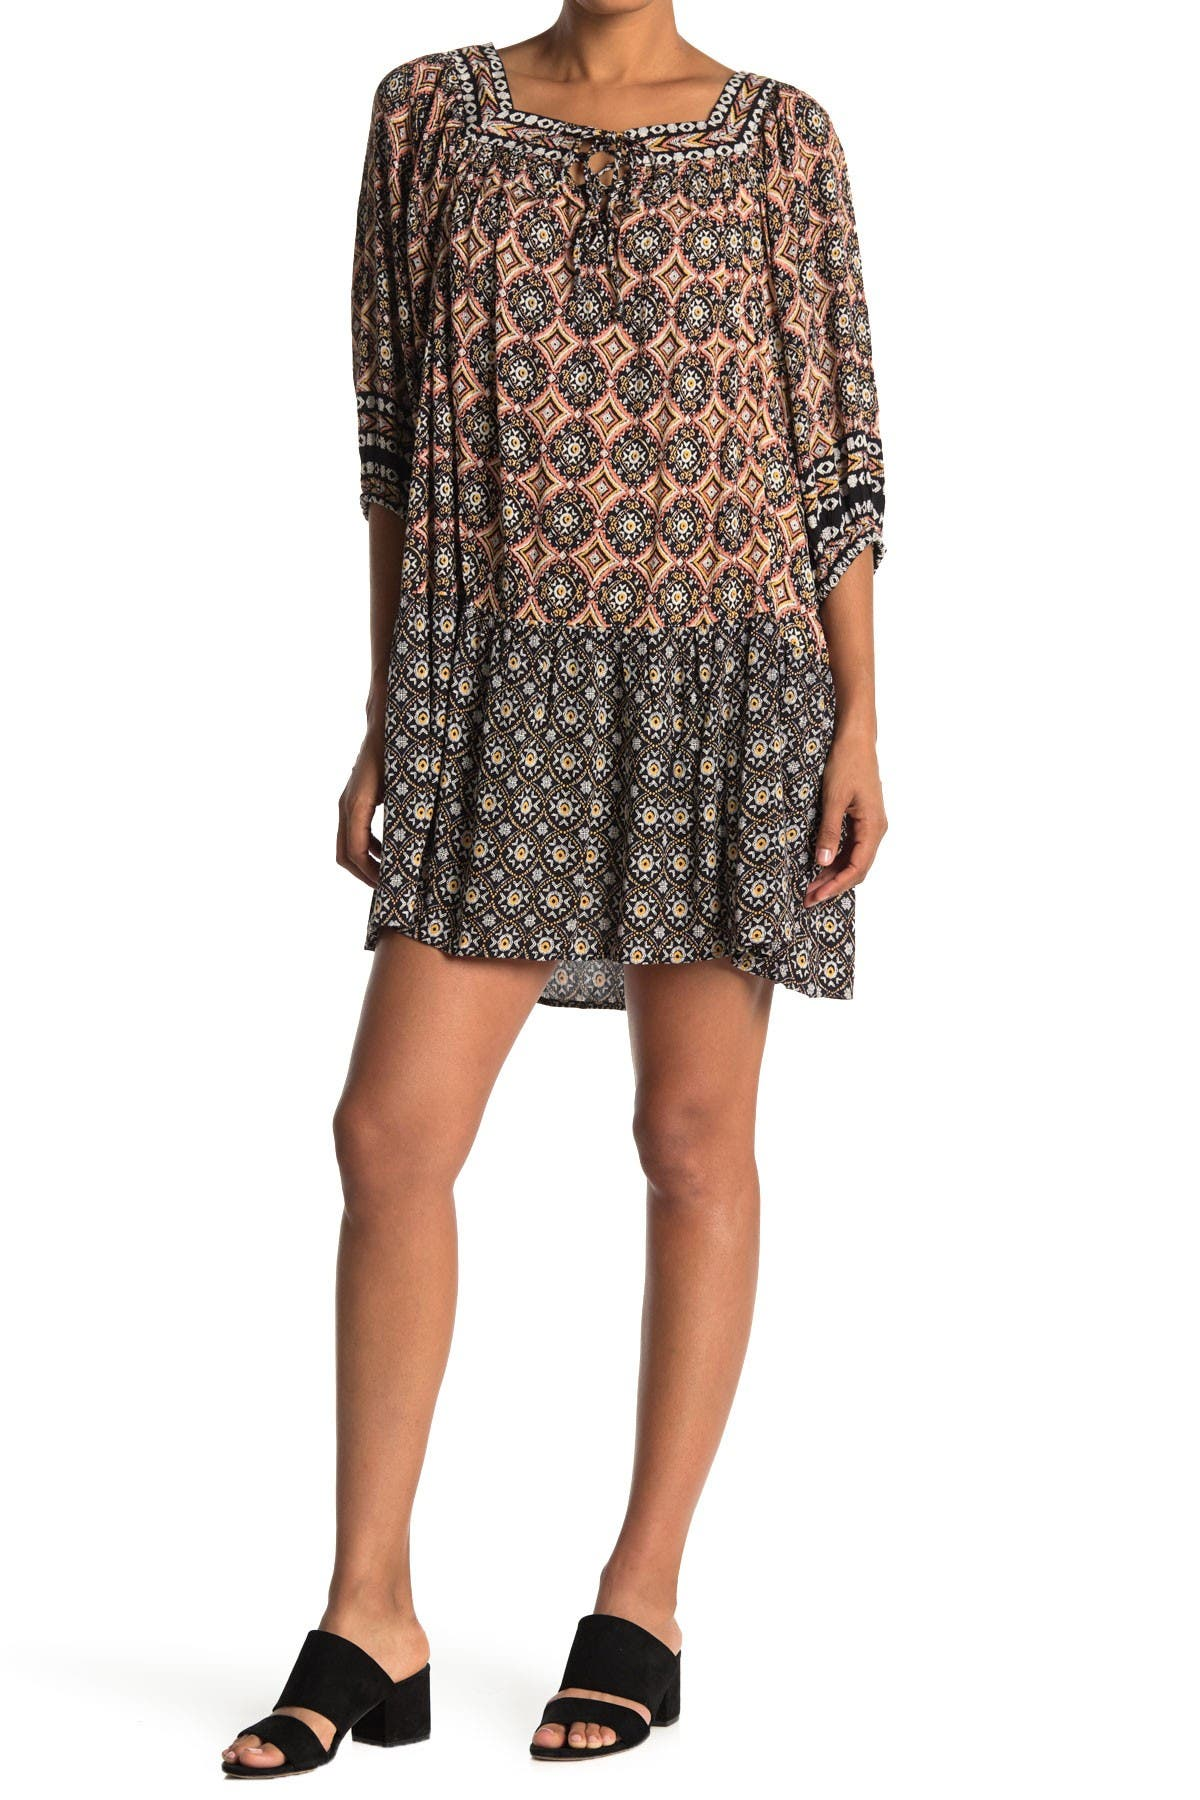 Image of Angie Square Neck Patterned Tent Dress